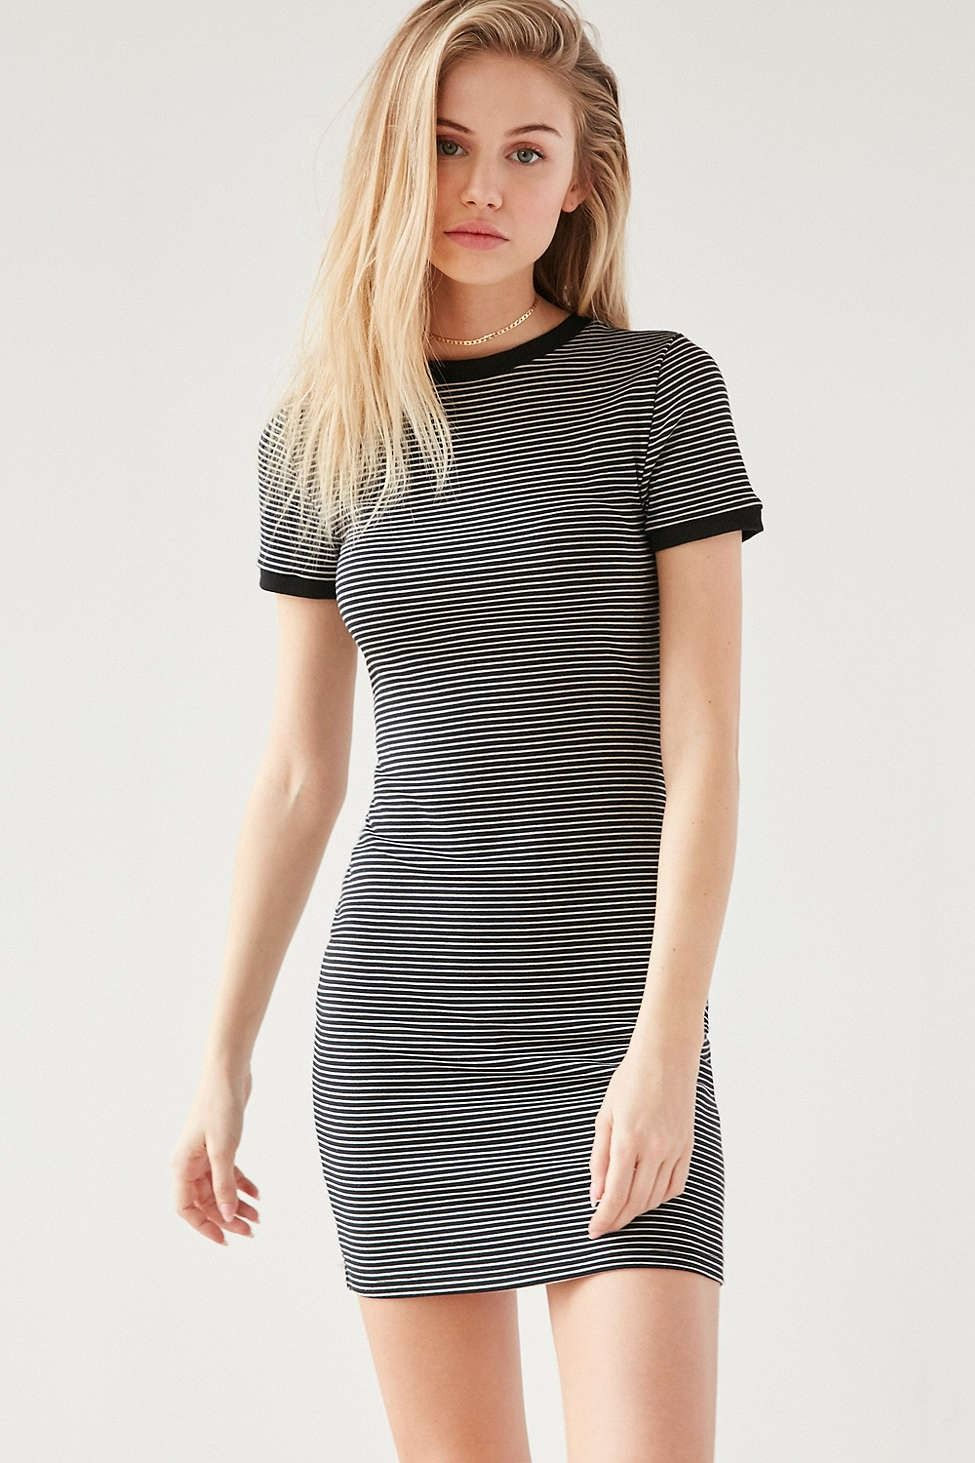 615952b4b0b BDG Striped Bodycon Tee Dress - Urban Outfitters